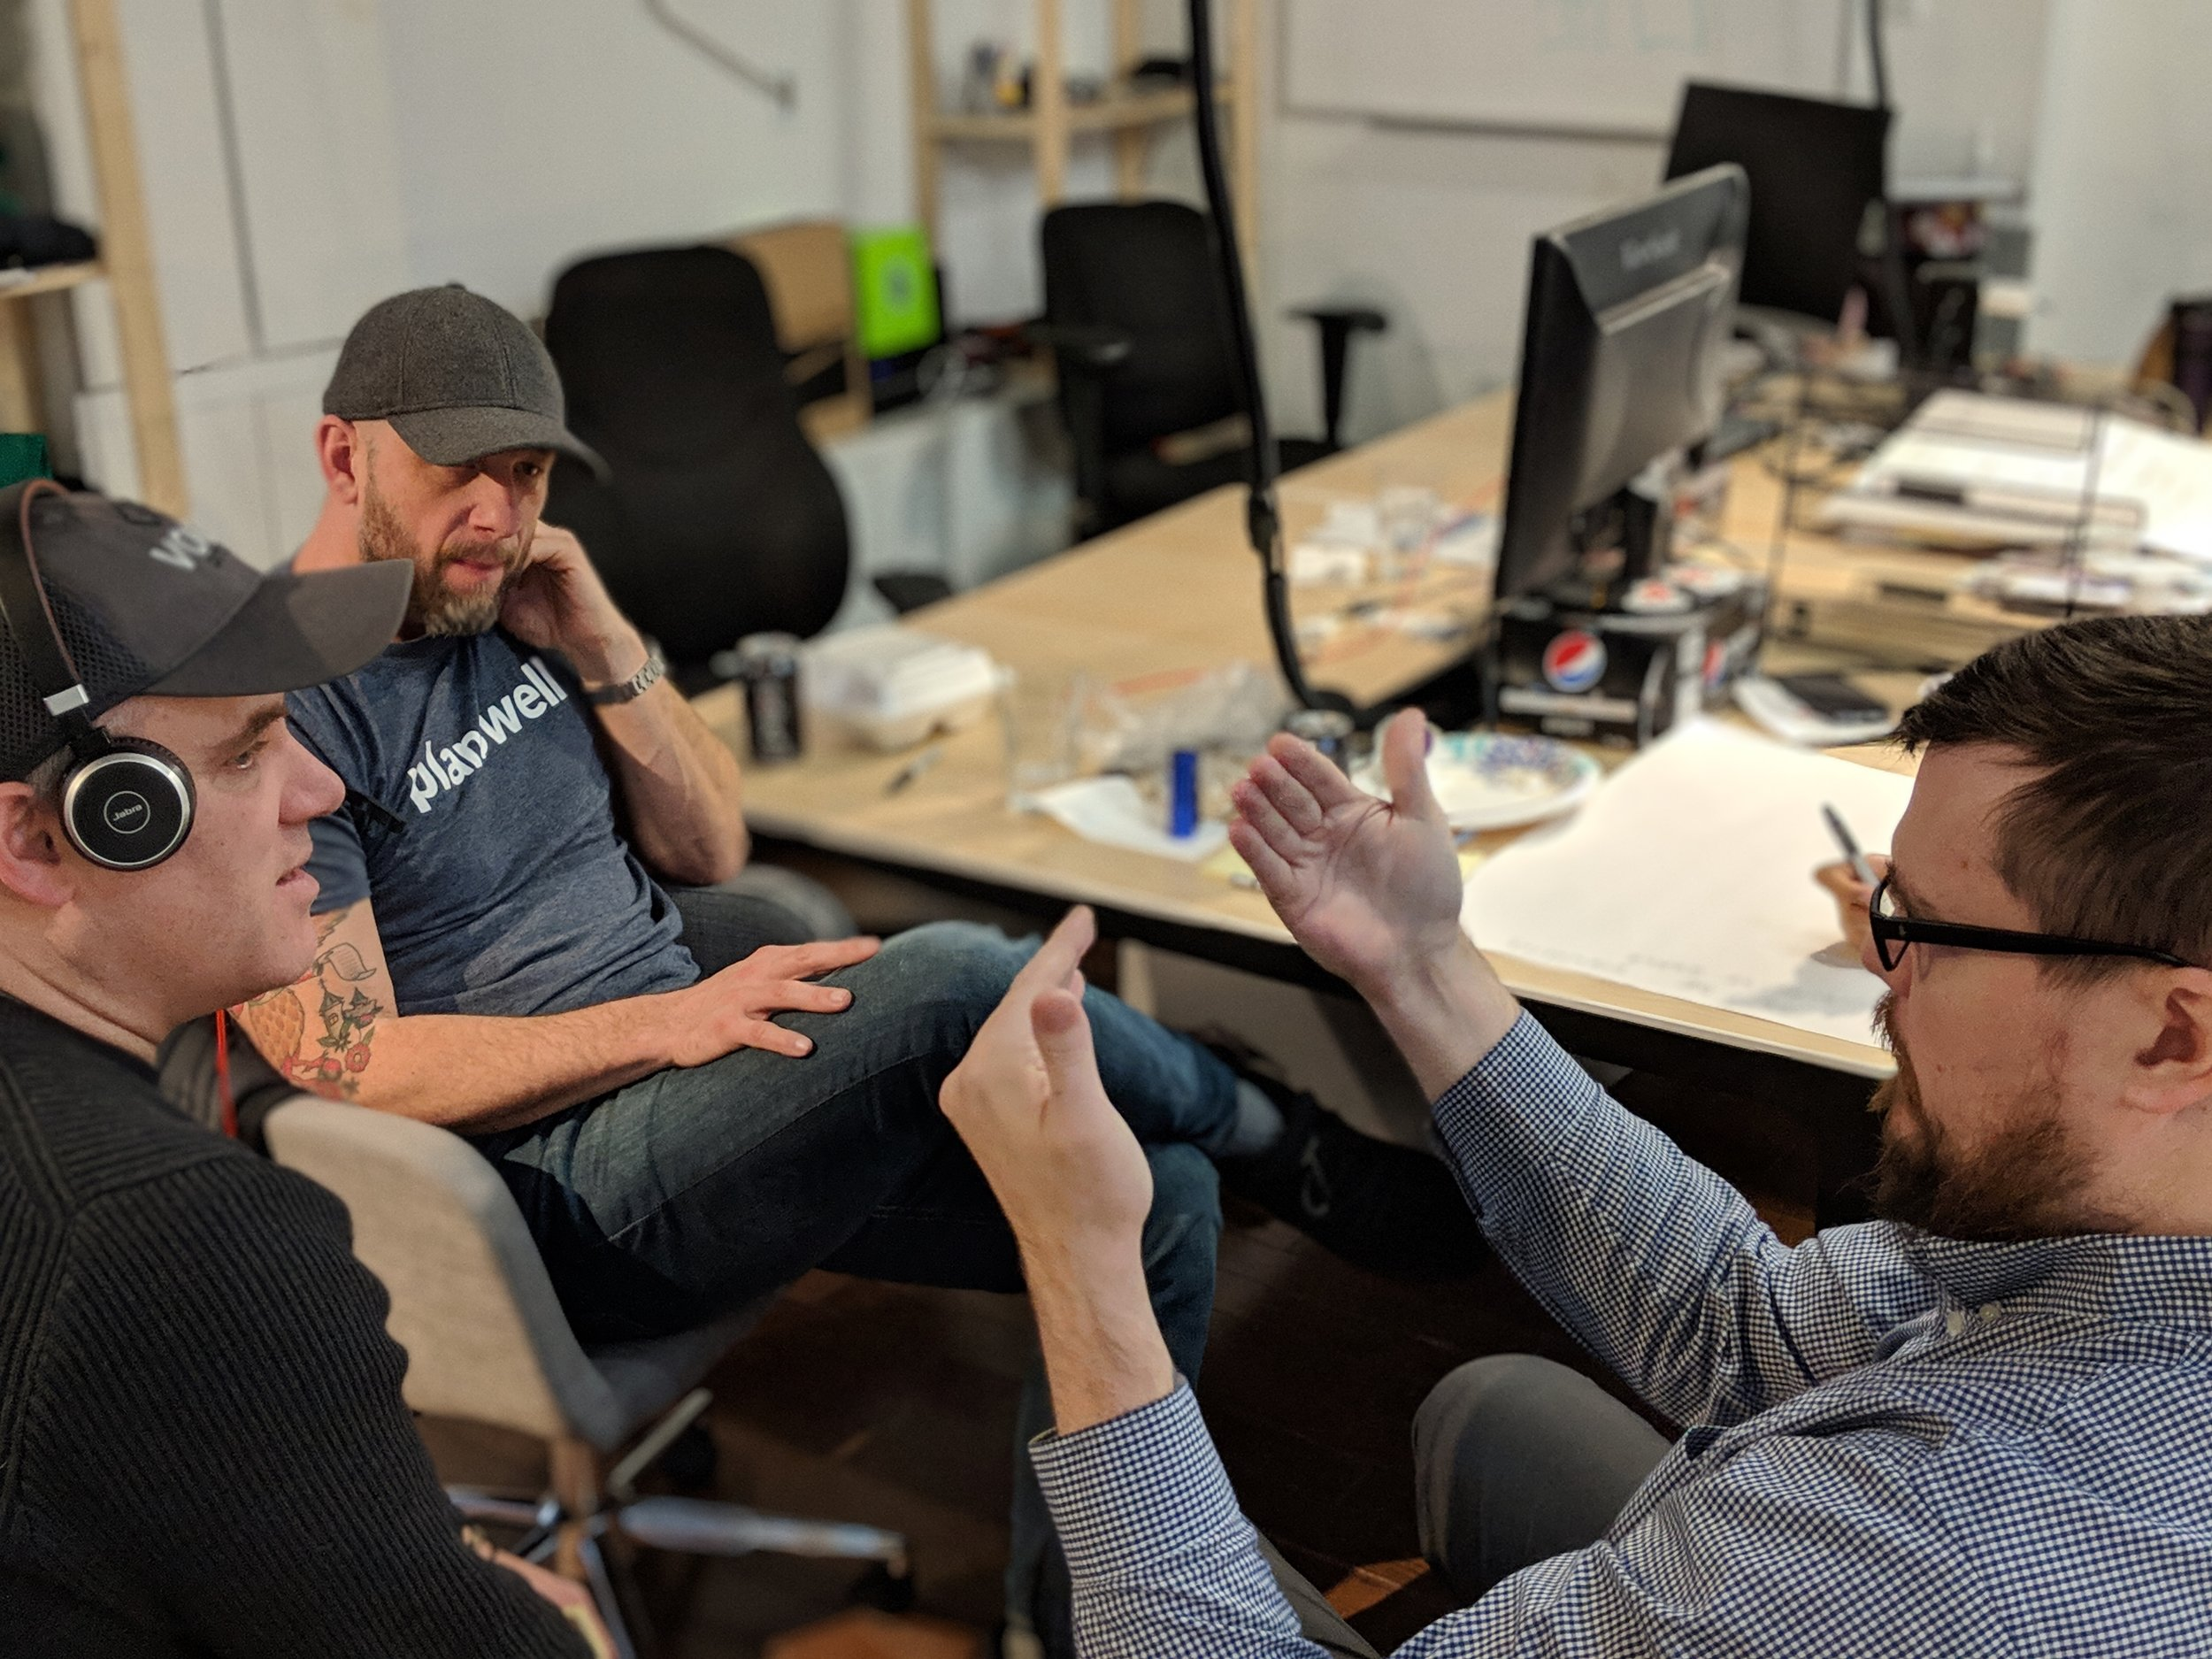 Planswell CMO Michael Wickware and team collaborate during an ideation session hosted by AccessAR.